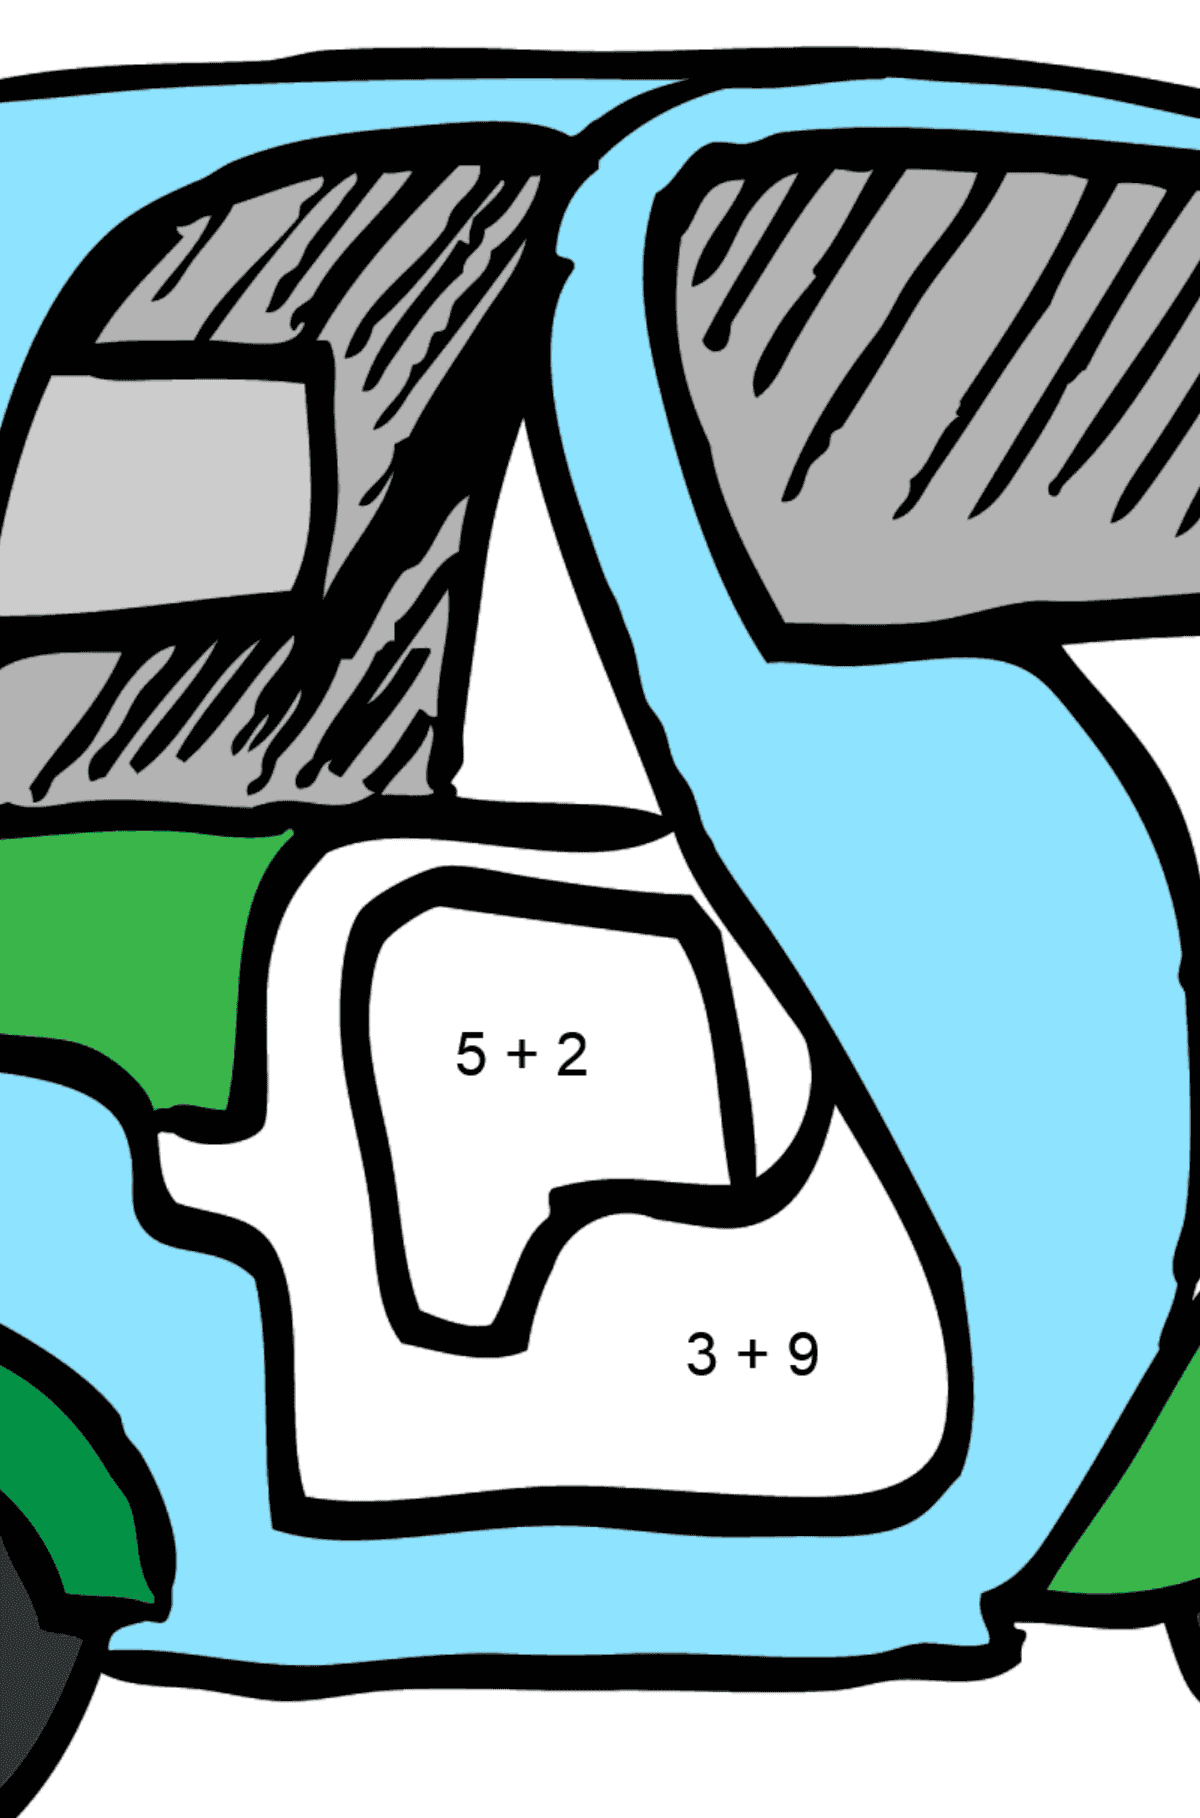 Coloring Page - A Moped is Carrying Mail - Math Coloring - Addition for Kids